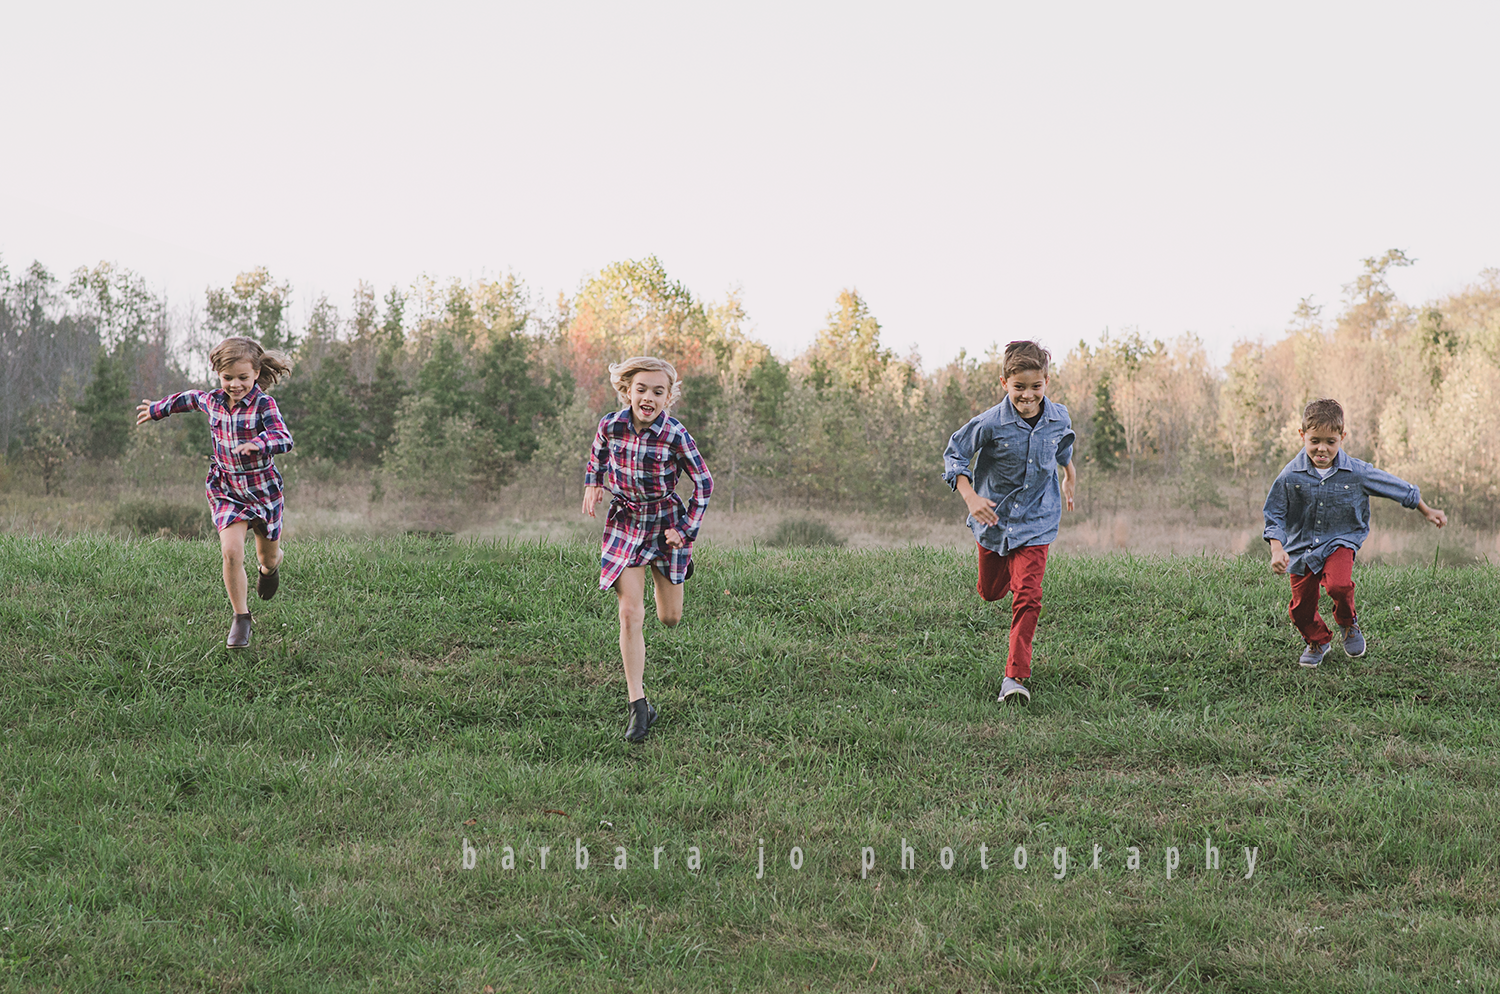 bjp-family-photographer-kids-siblings-blended-brothers-sisters-fall-mini-sessions-children-love-rachel10.png